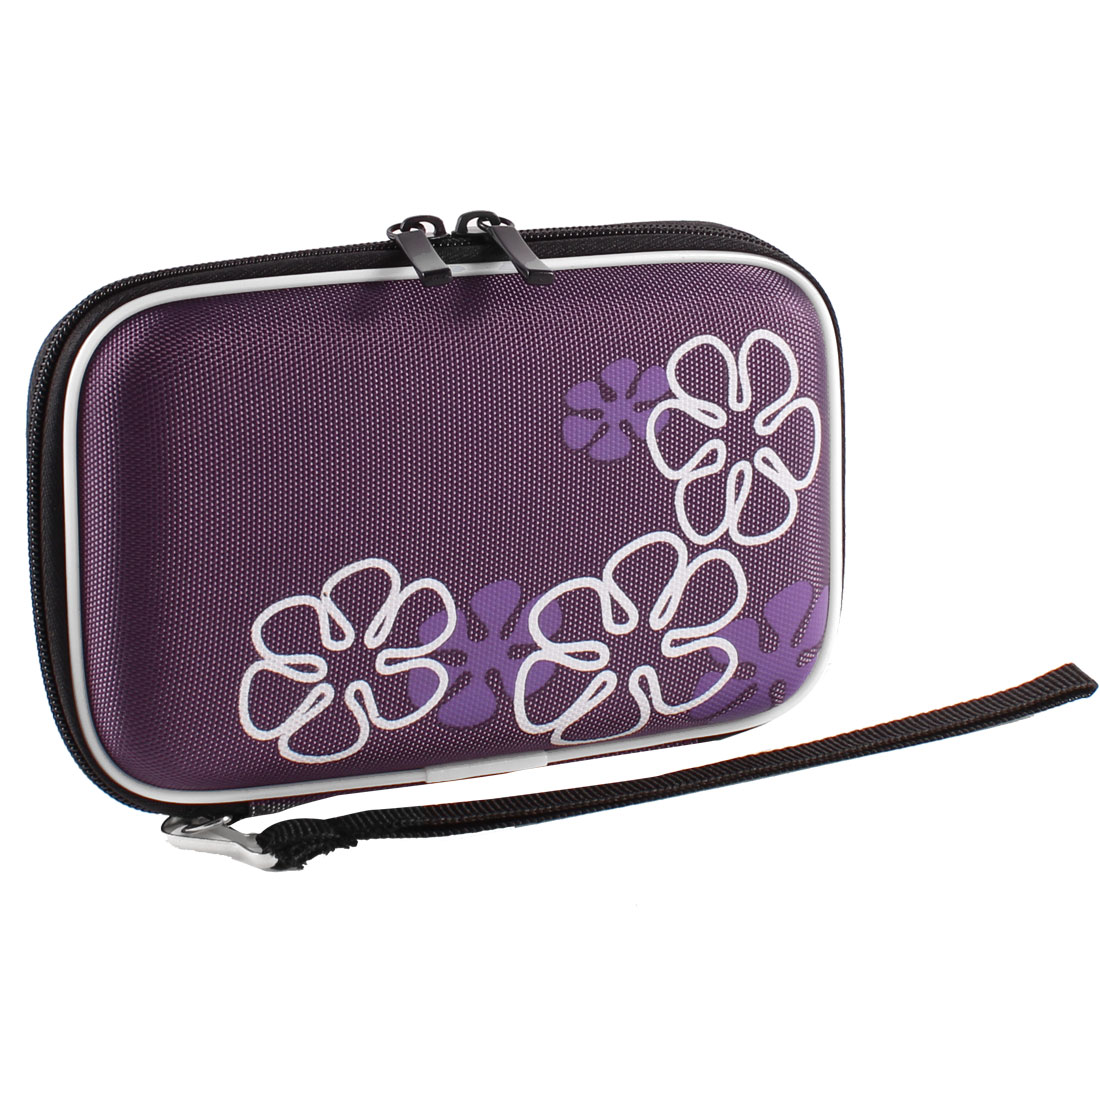 "Purple EVA Hard Drive Disk Carrying Case Cover Pouch Zipper Closure for 2.5"" HDD"